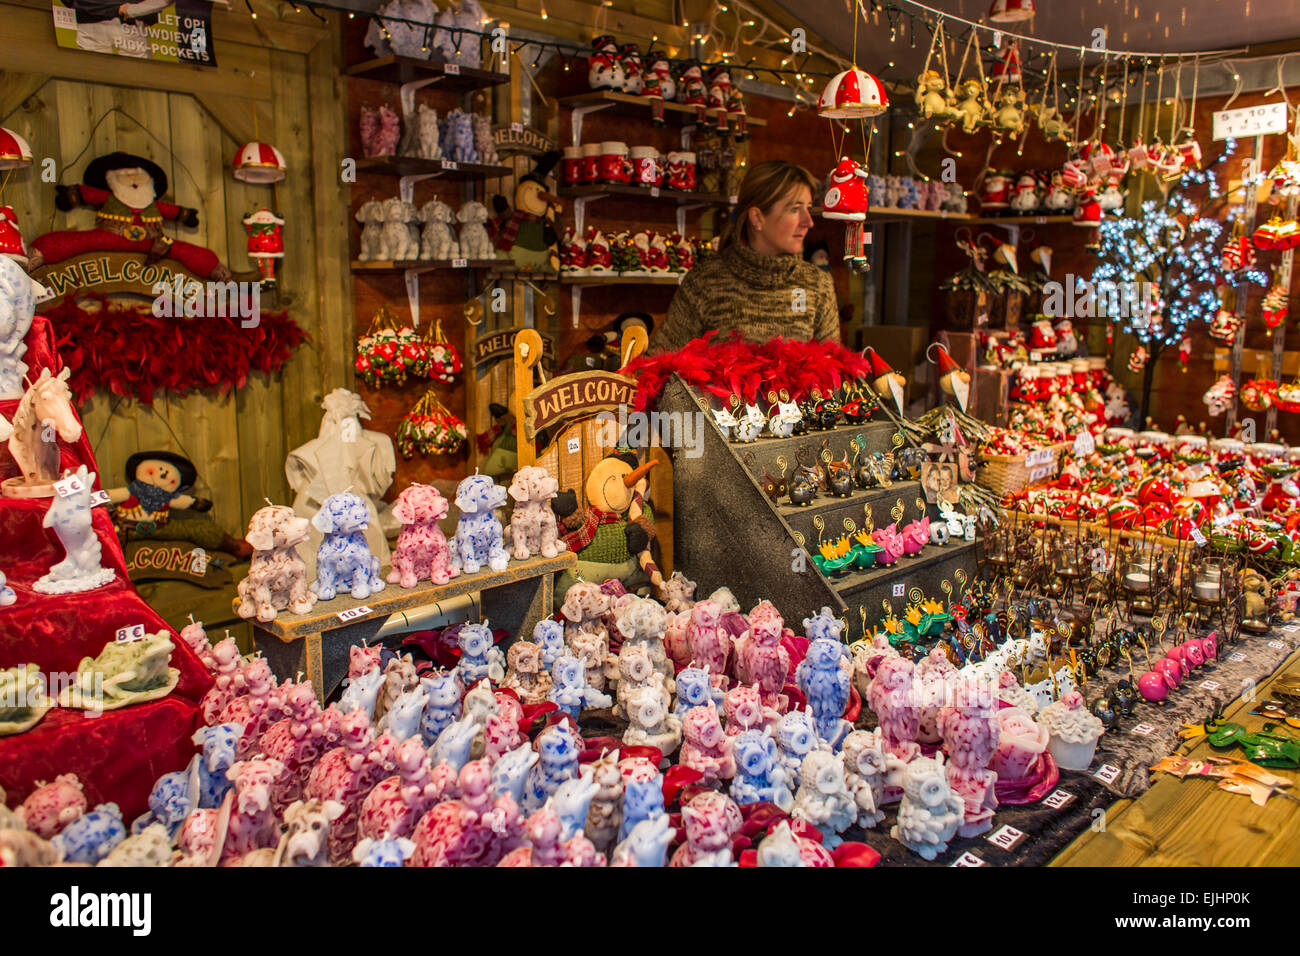 Bruges Christmas Market.Christmas Market In Main Square In Bruges Belgium Stock